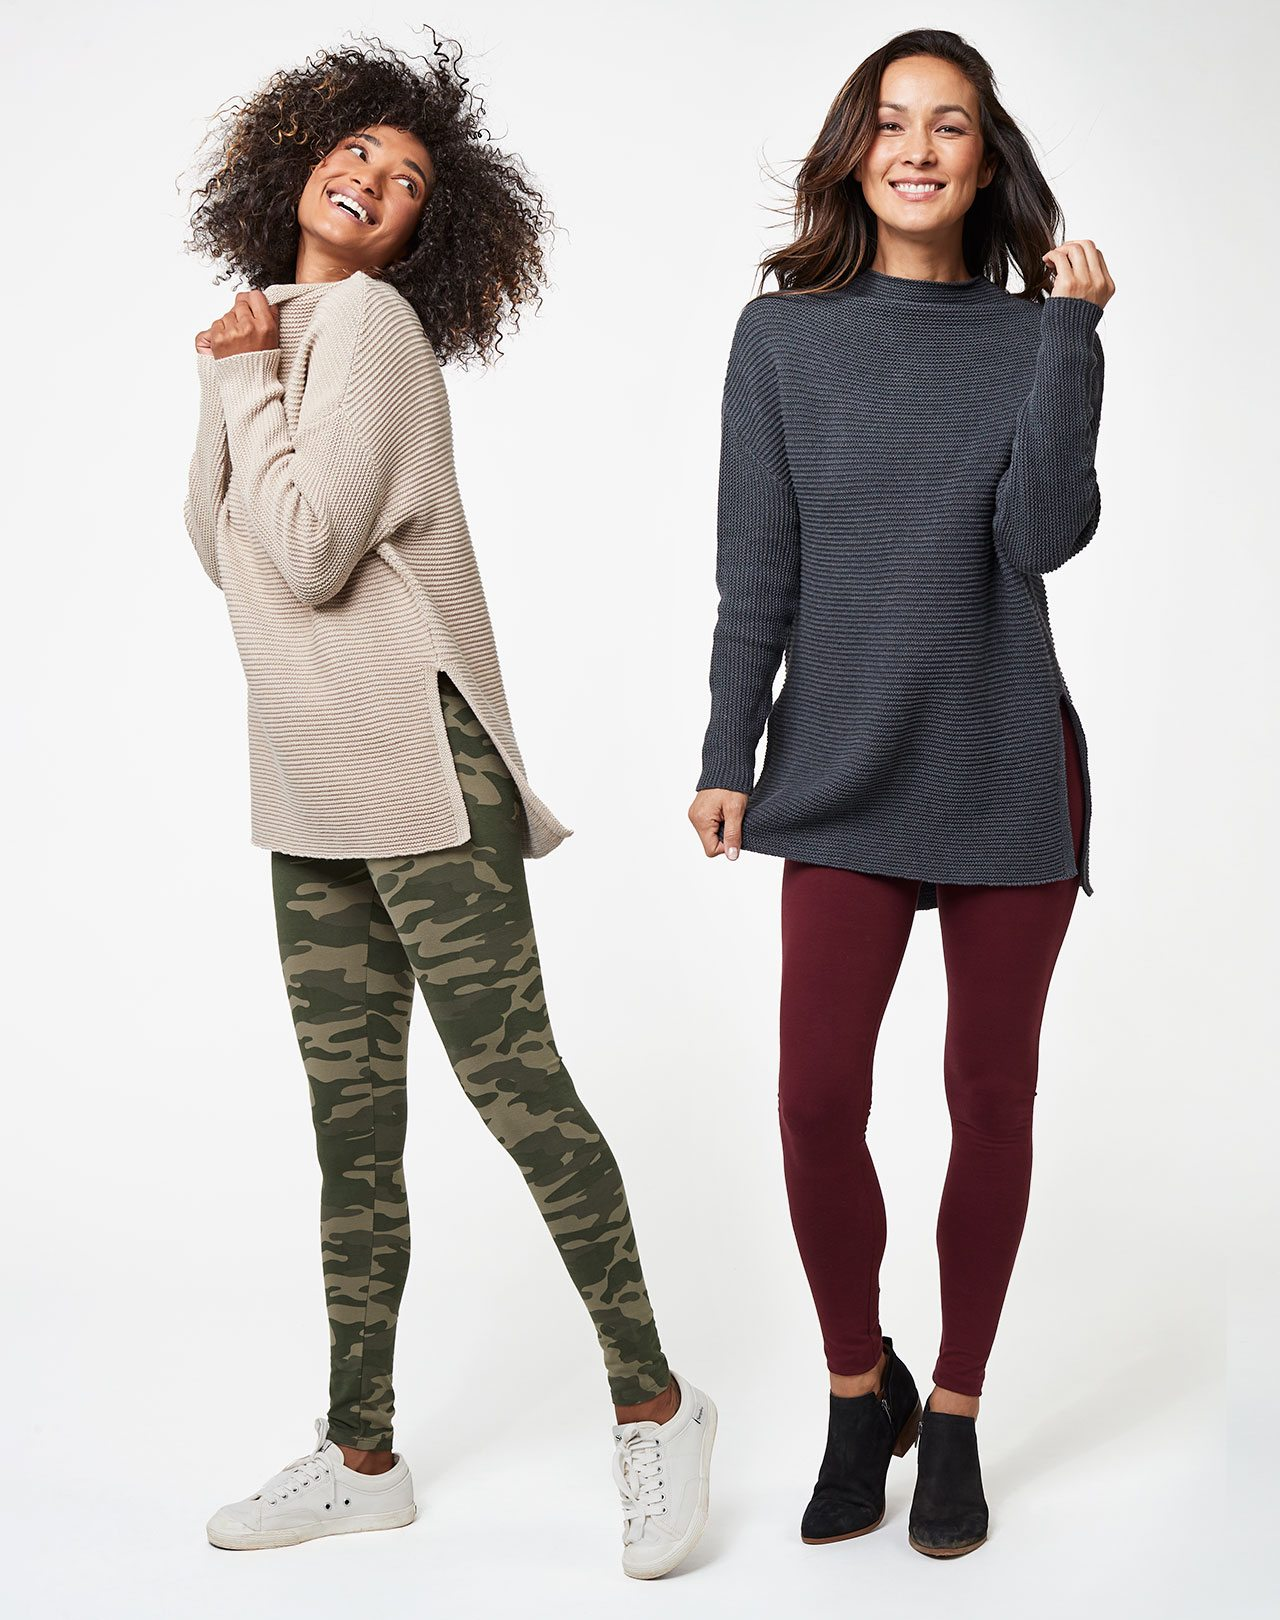 Pair with one of our new sweaters